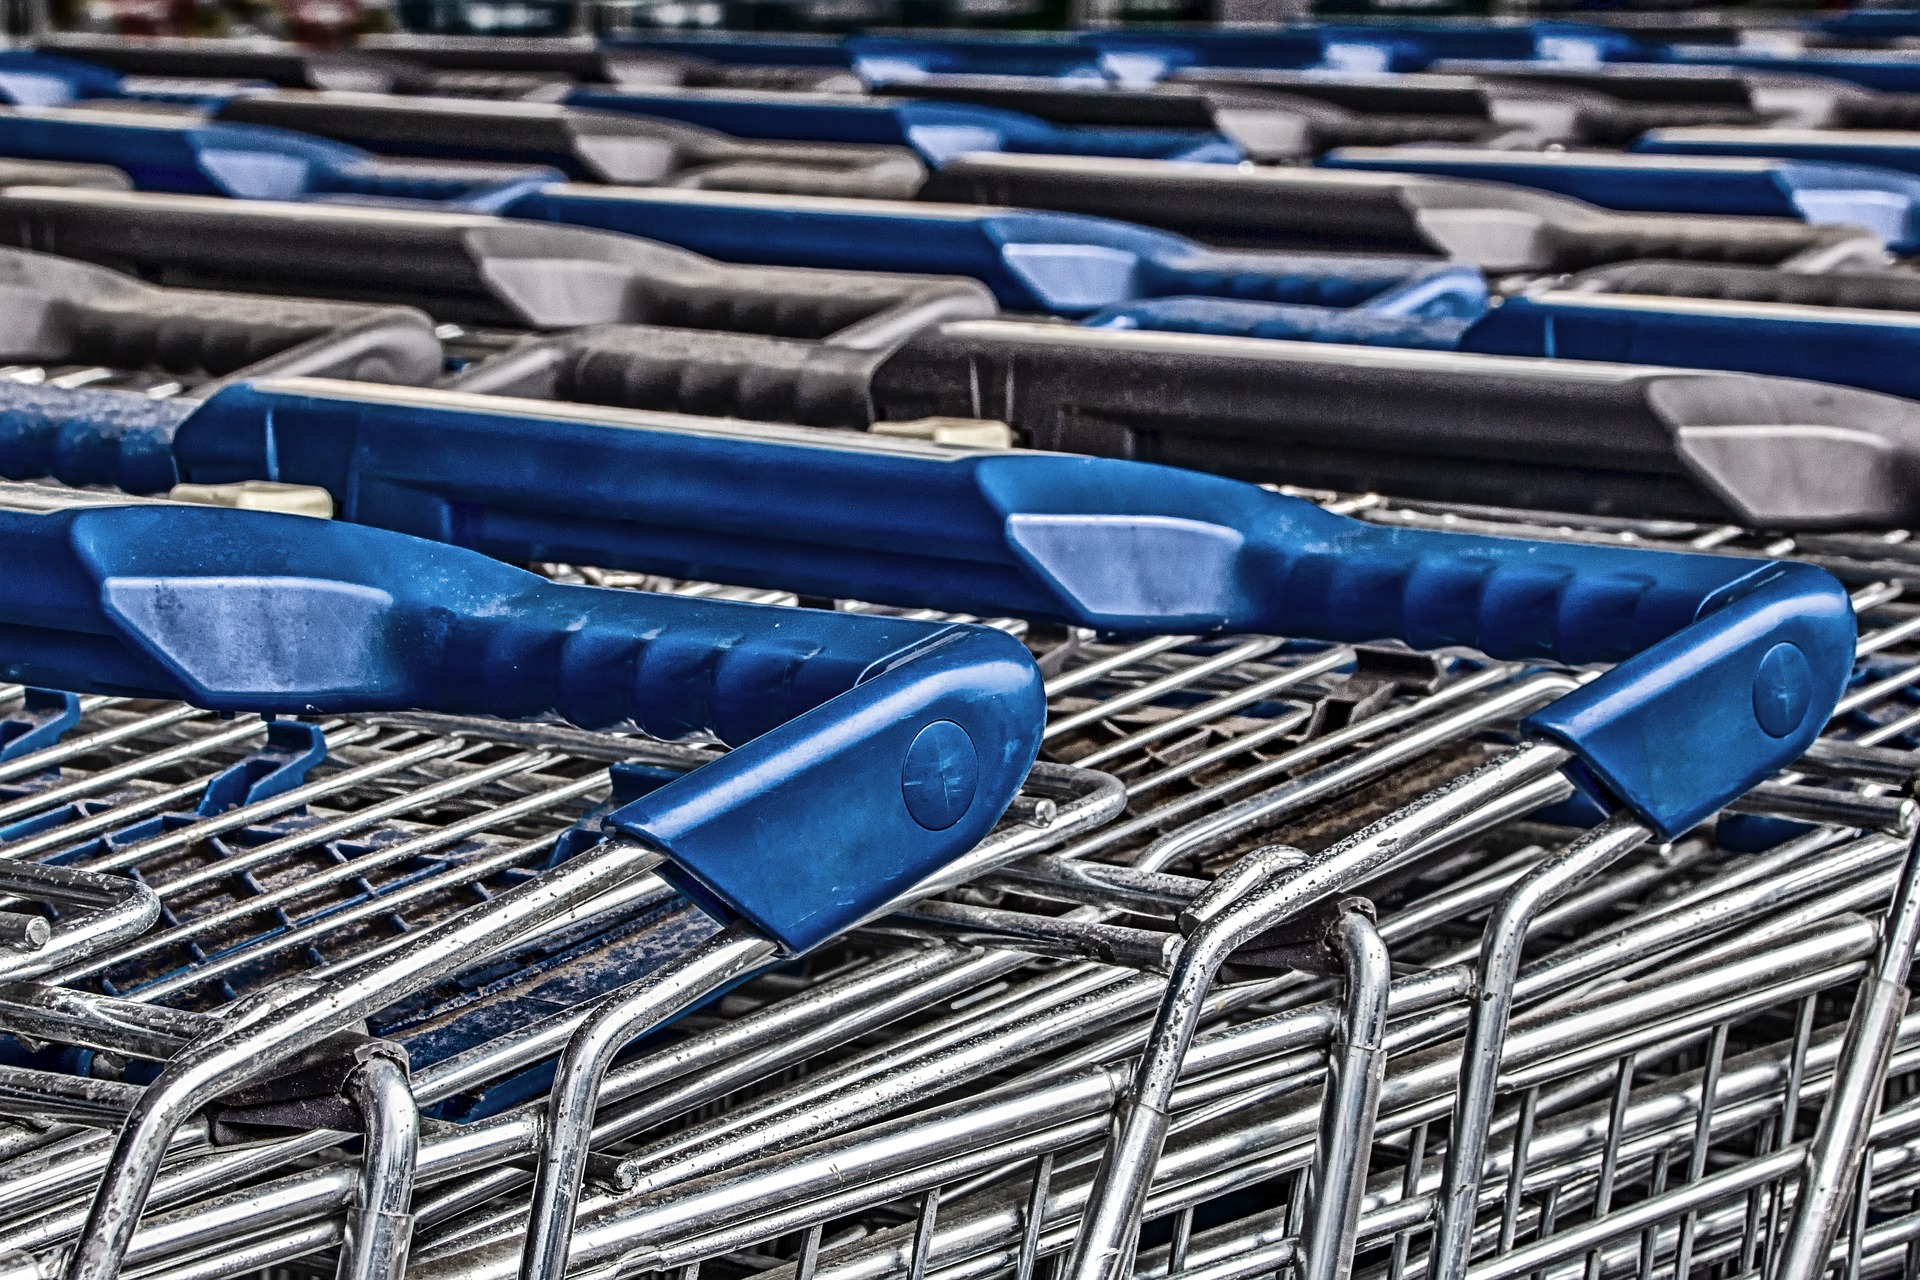 shopping-cart-3980067_1920.jpg